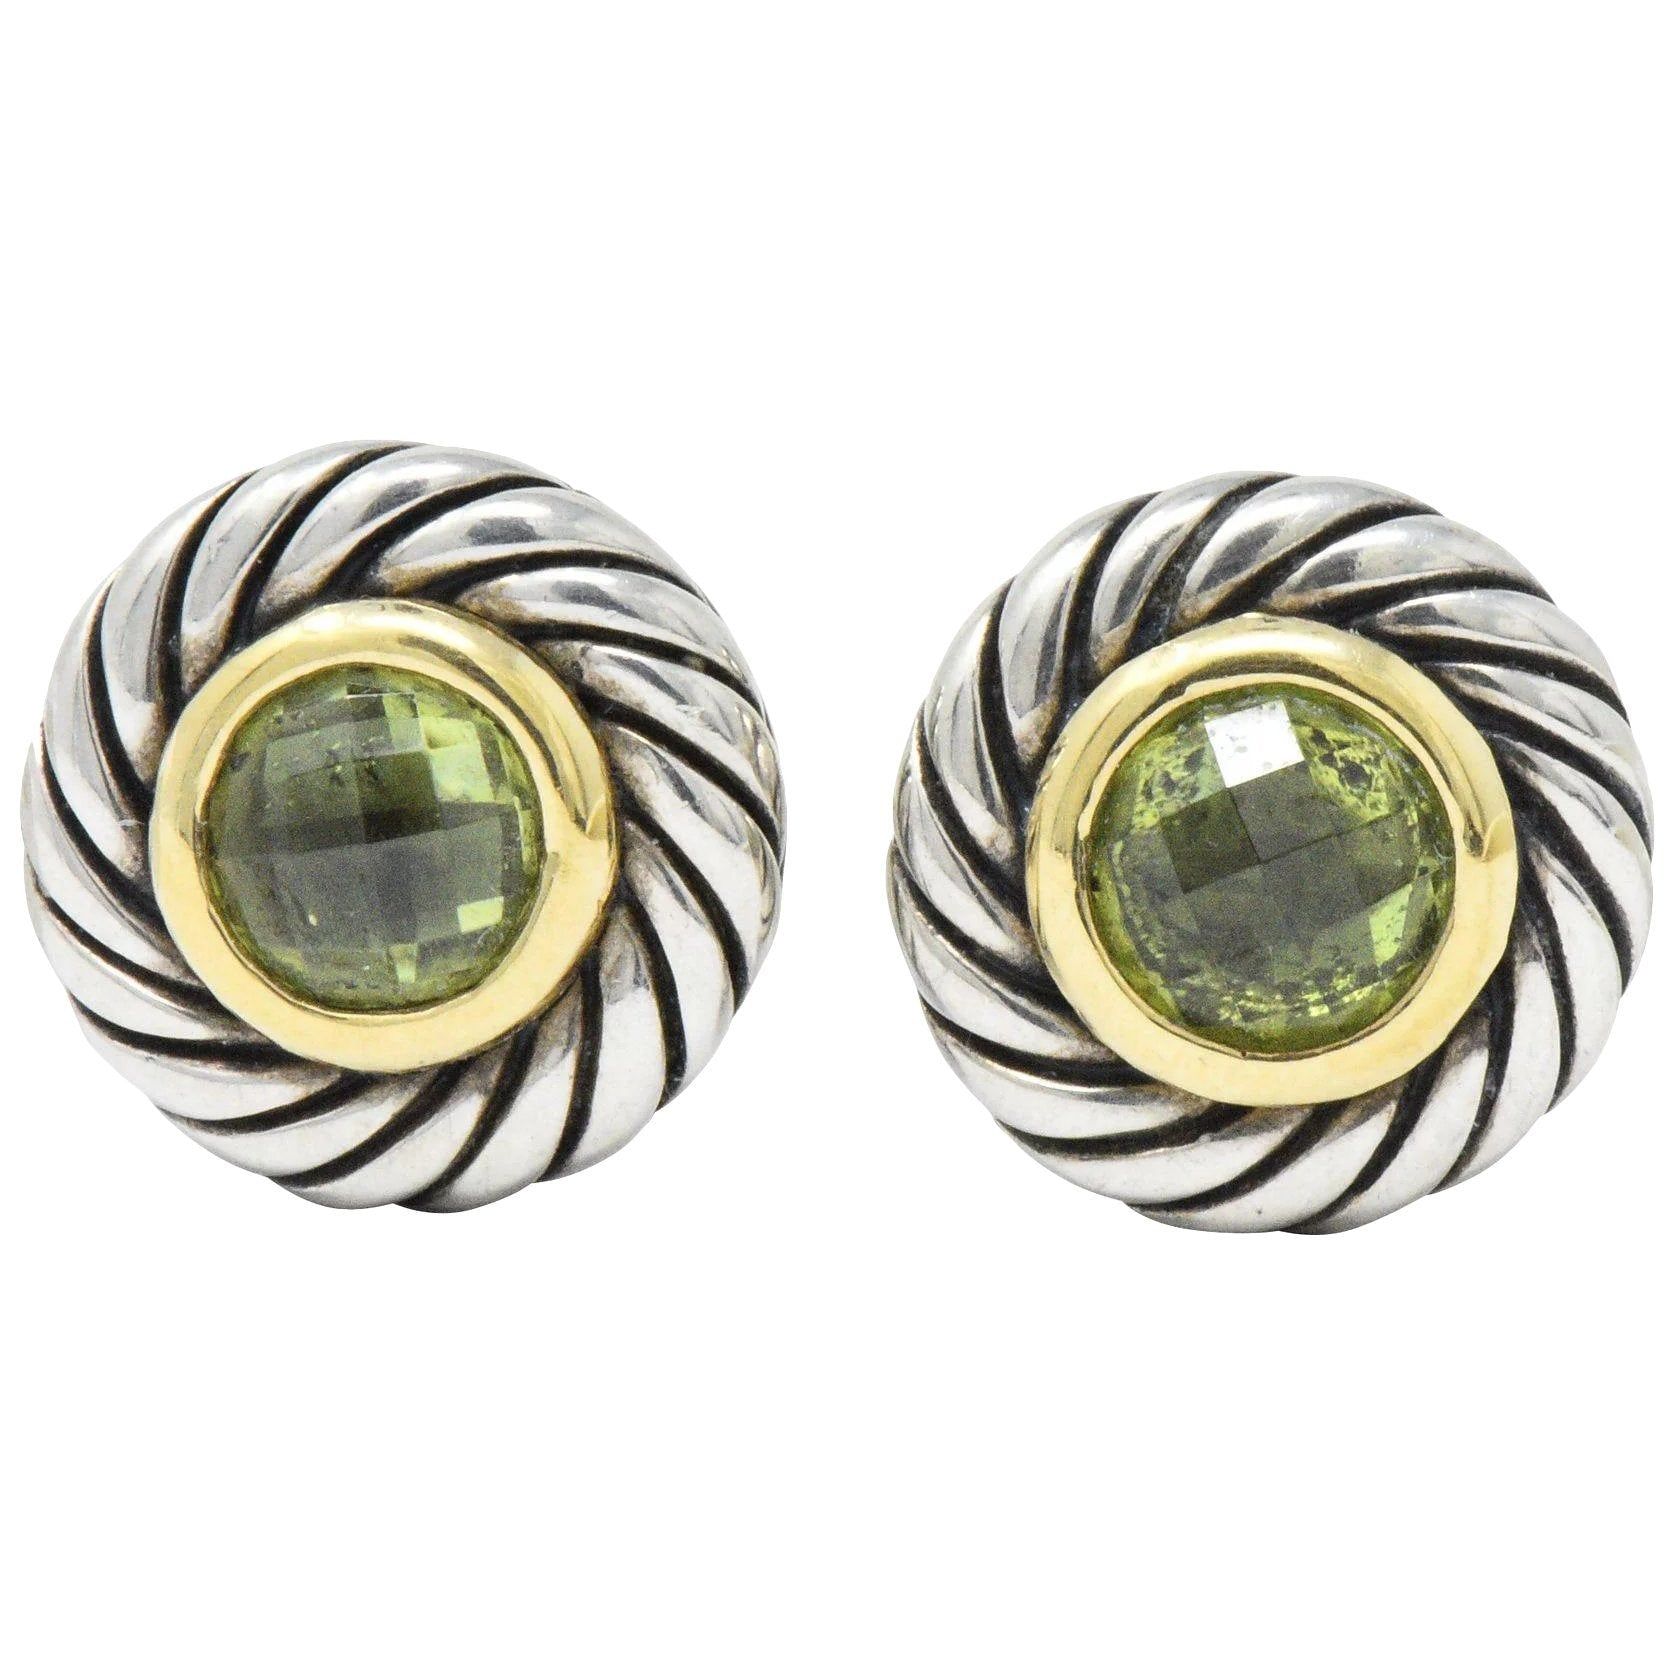 4842c0574 David Yurman Peridot 18 Karat Gold Sterling Silver Cookie Earrings Earrings  ...